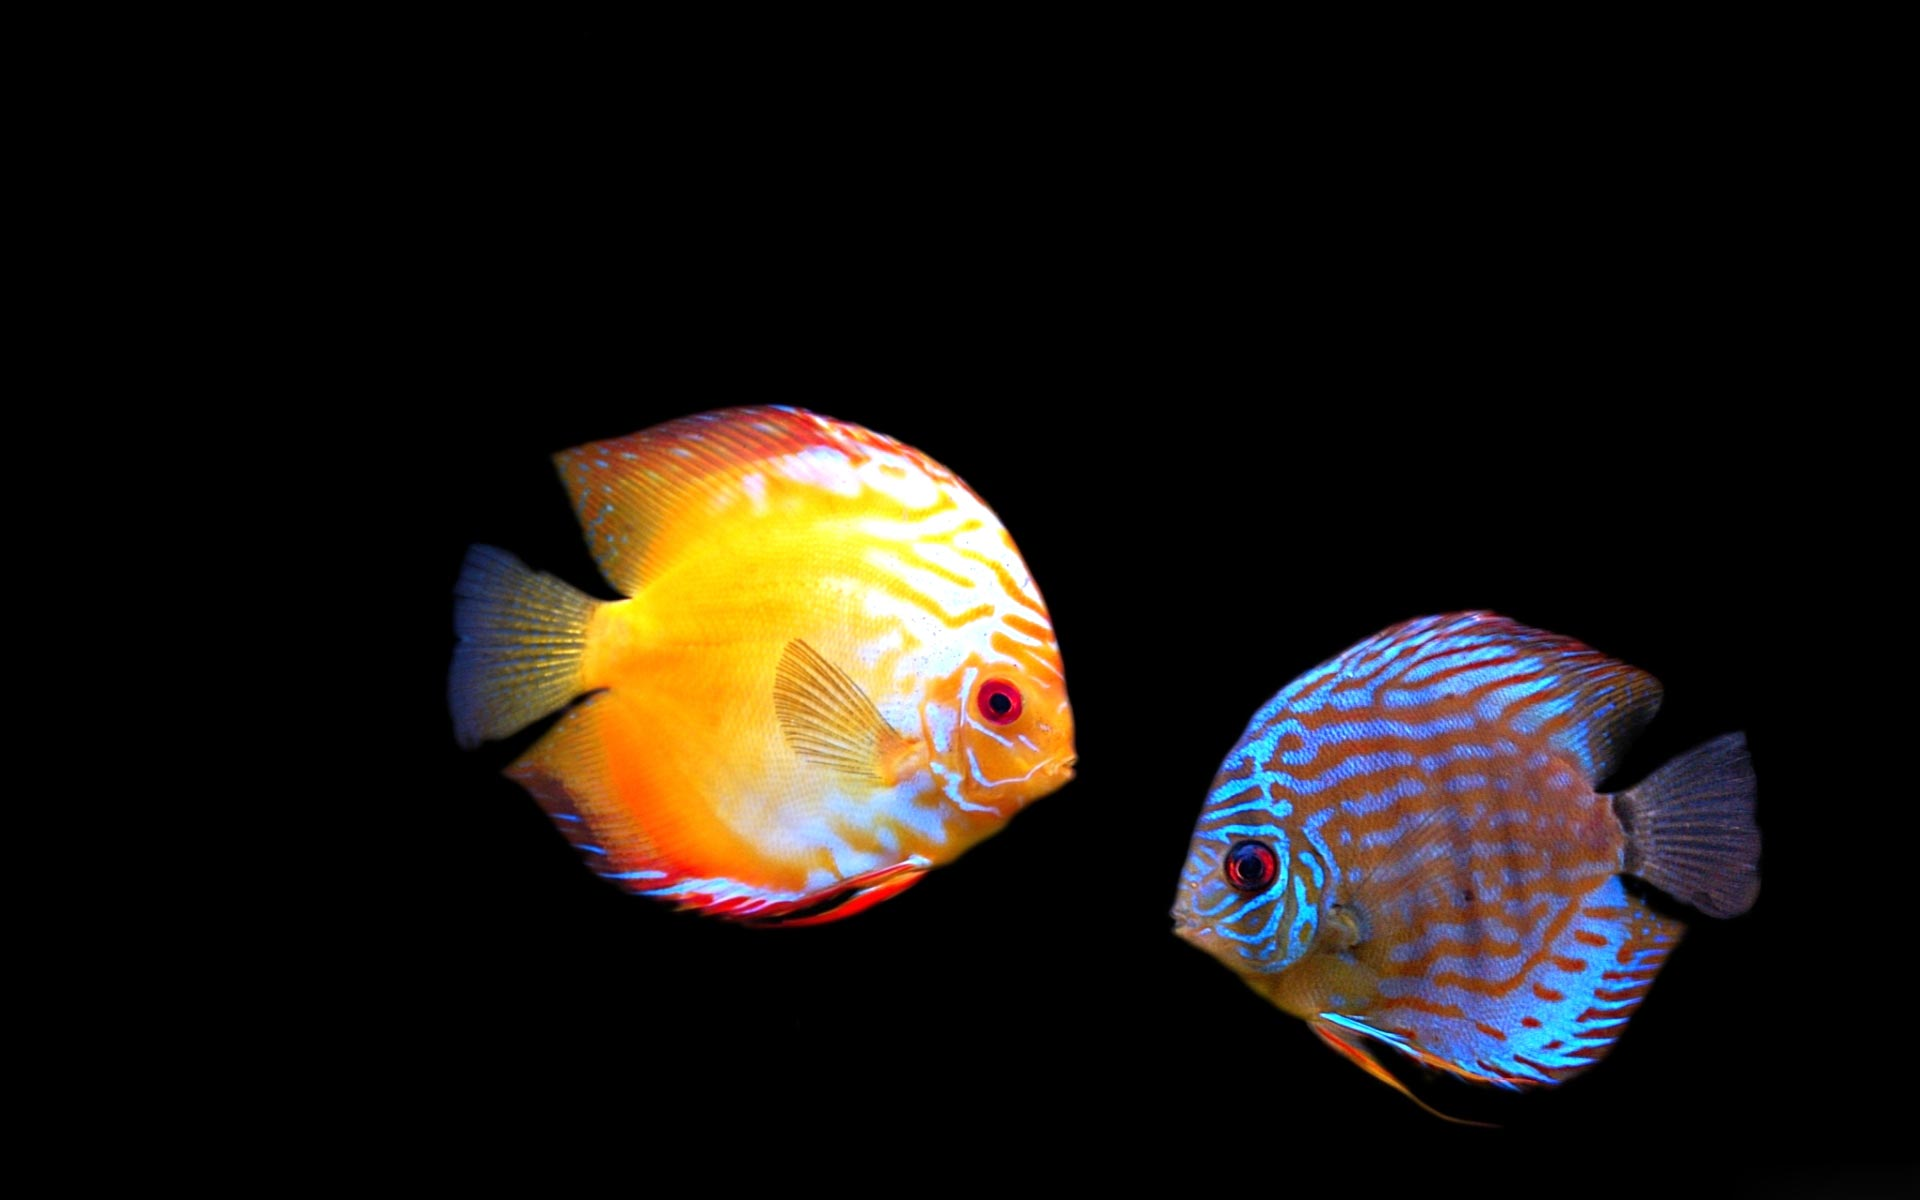 Fish Wallpaper Windows 7 13338 Hd Wallpapers in Animals   Imagescicom 1920x1200